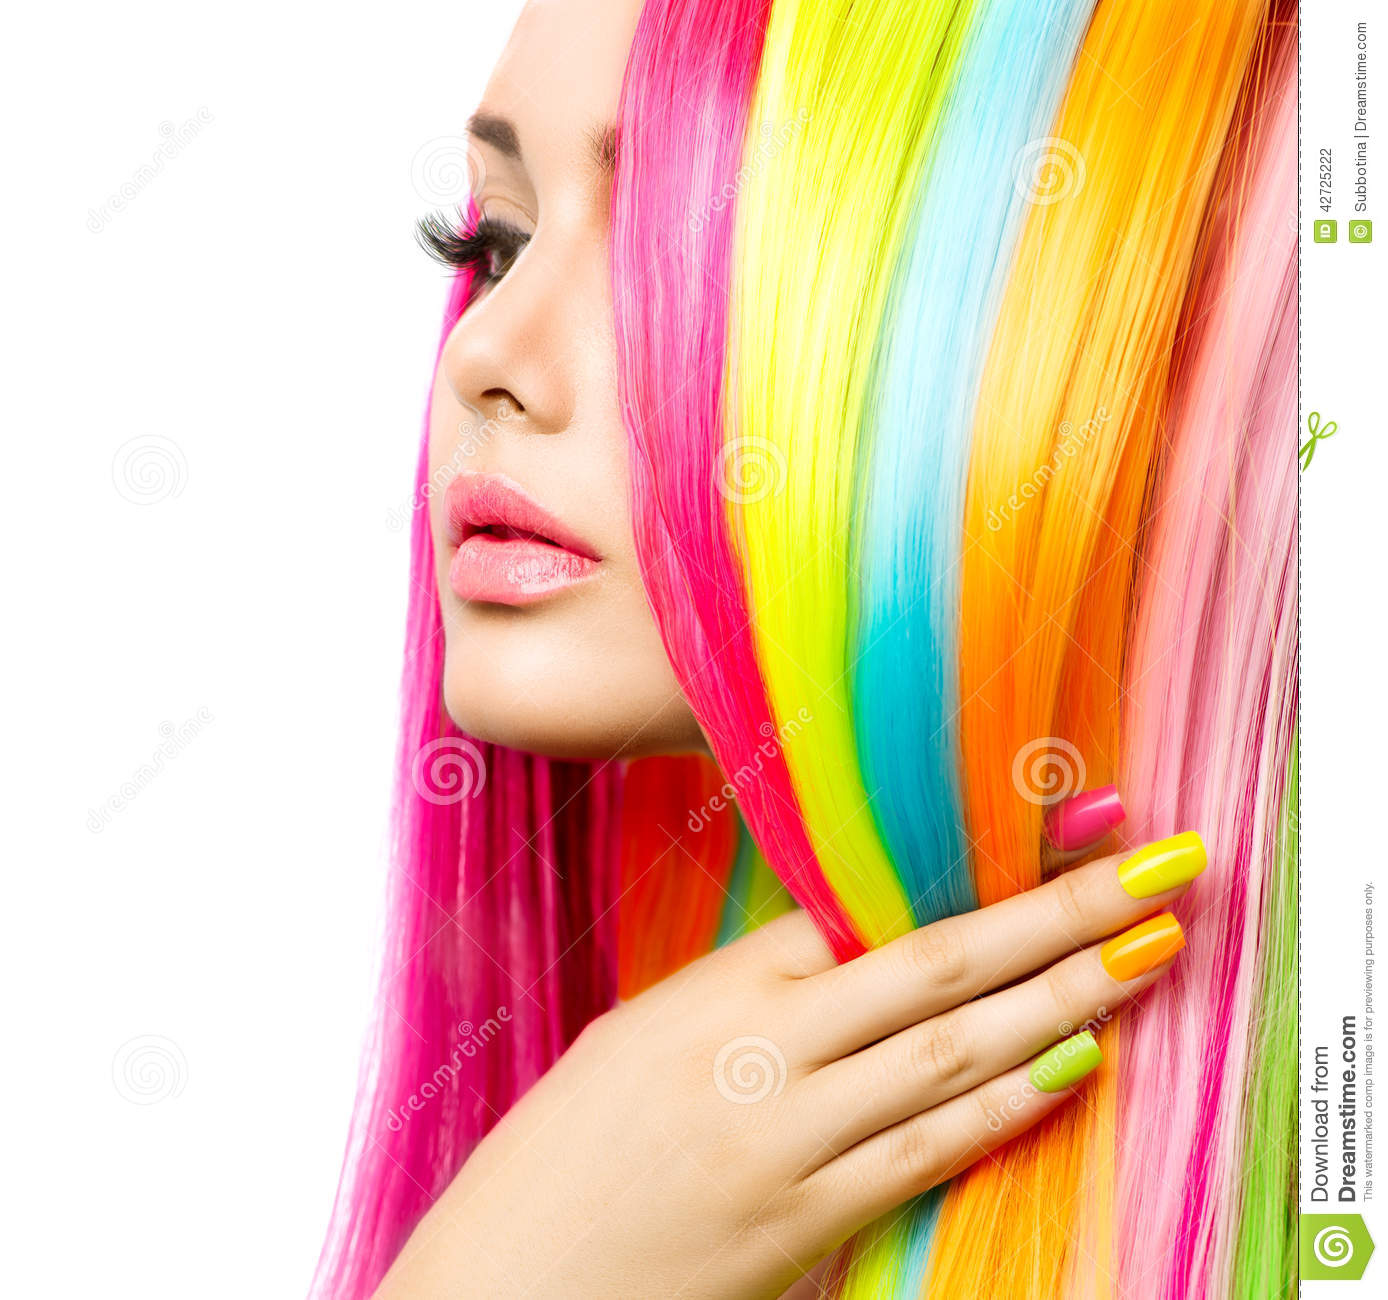 Girl Portrait With Colorful Hair And Nail Polish Stock Photo Image